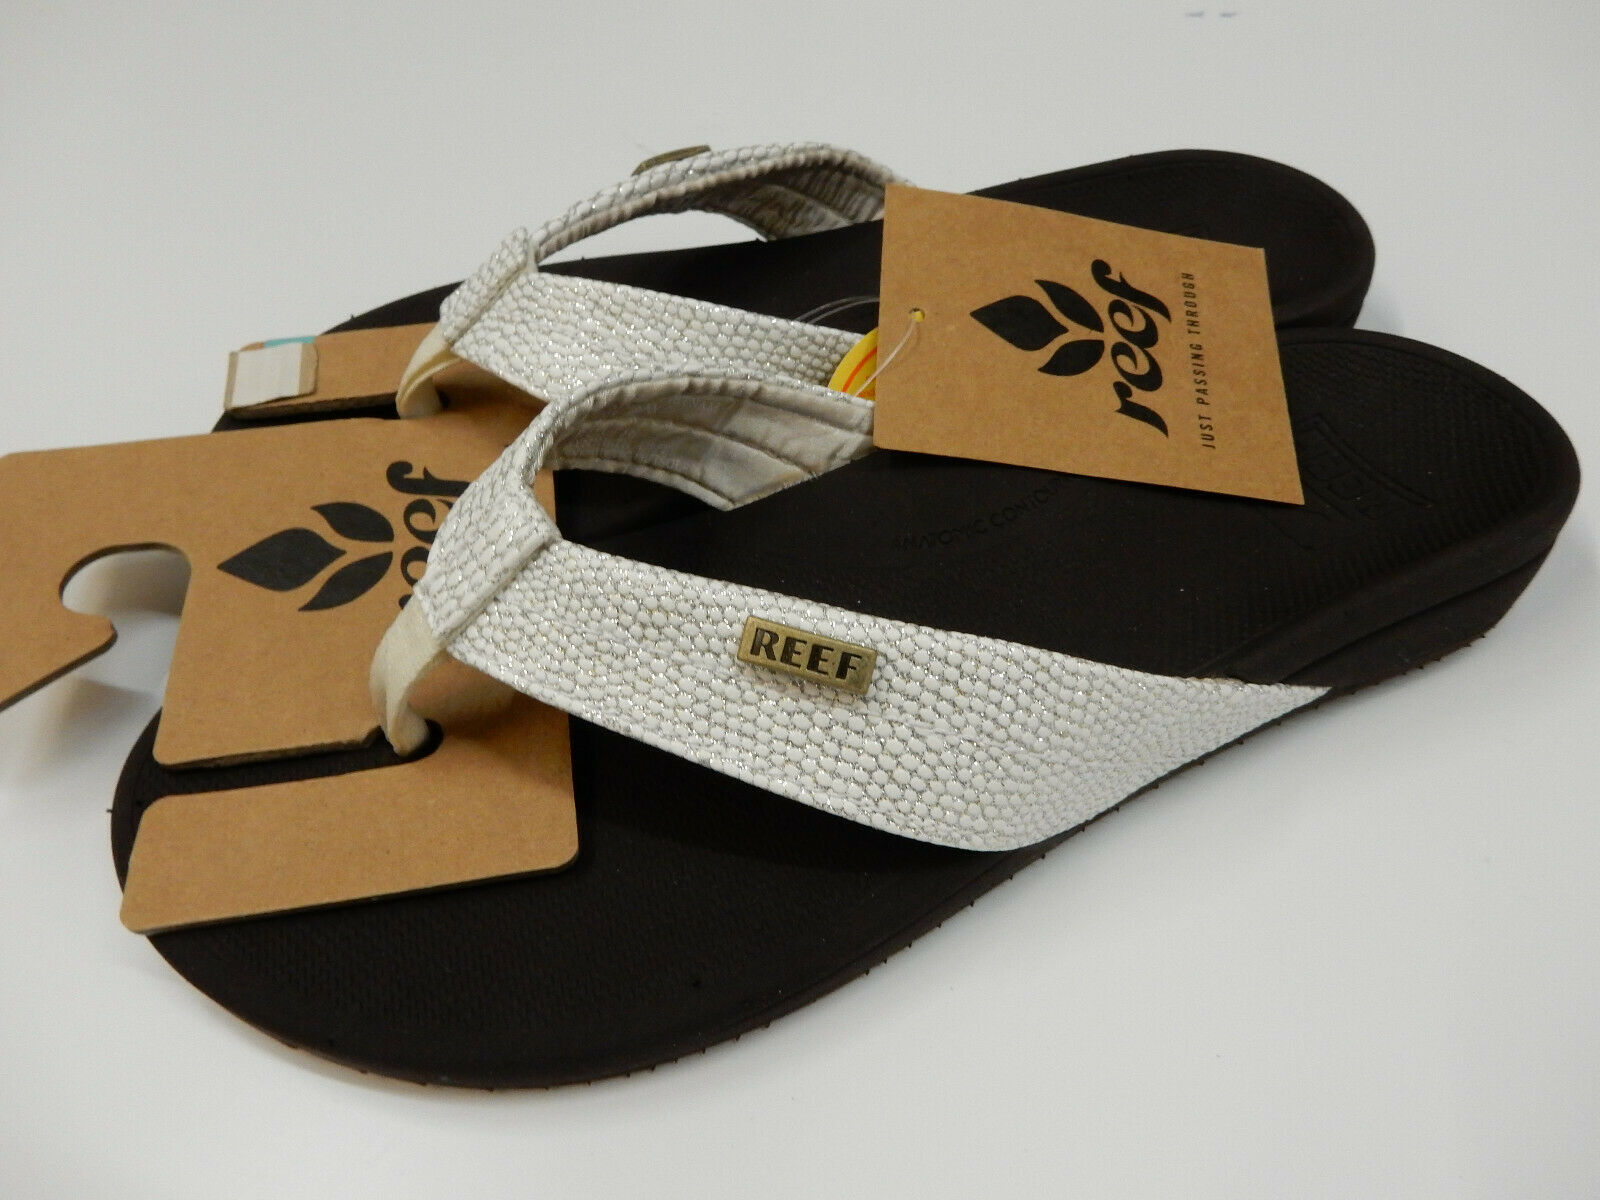 Reef Womens Ortho-Spring Brown White Size 6